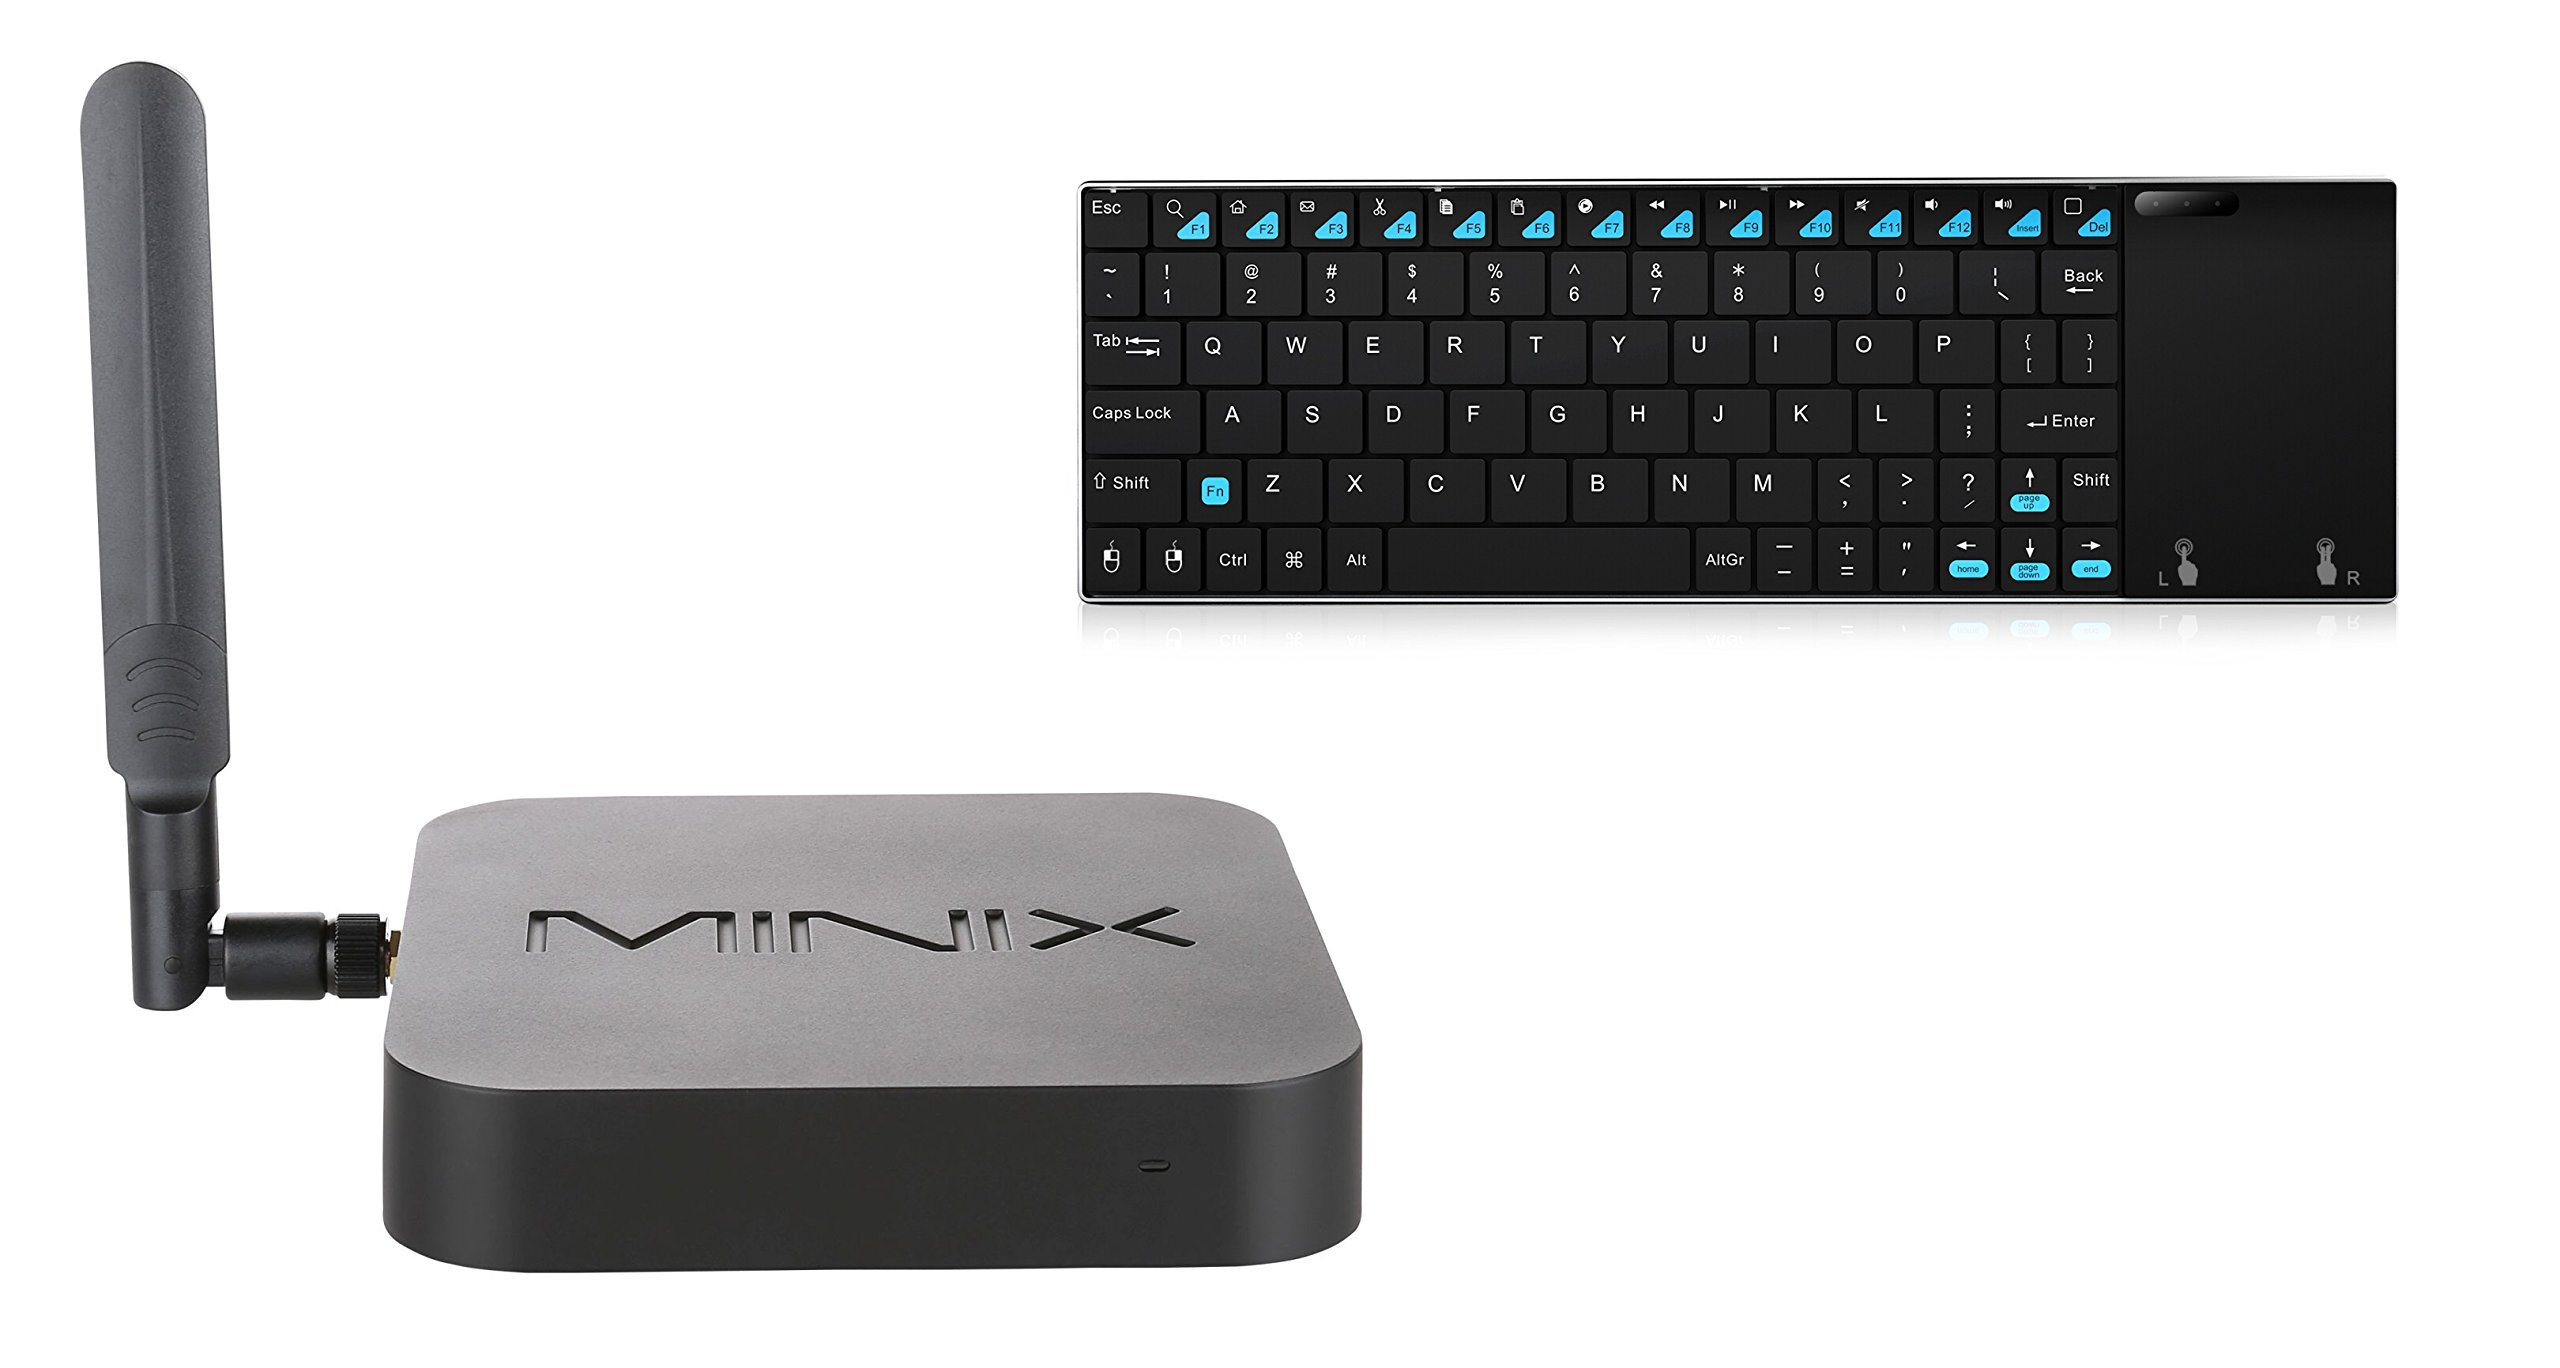 MINIX NEO Z83-4 + MINIX NEO K2, Intel Cherry Trail Fanless Mini PC Windows 10 (64-bit) & Wireless Keyboard and Touchpad. Sold Directly by MINIX Technology Limited.